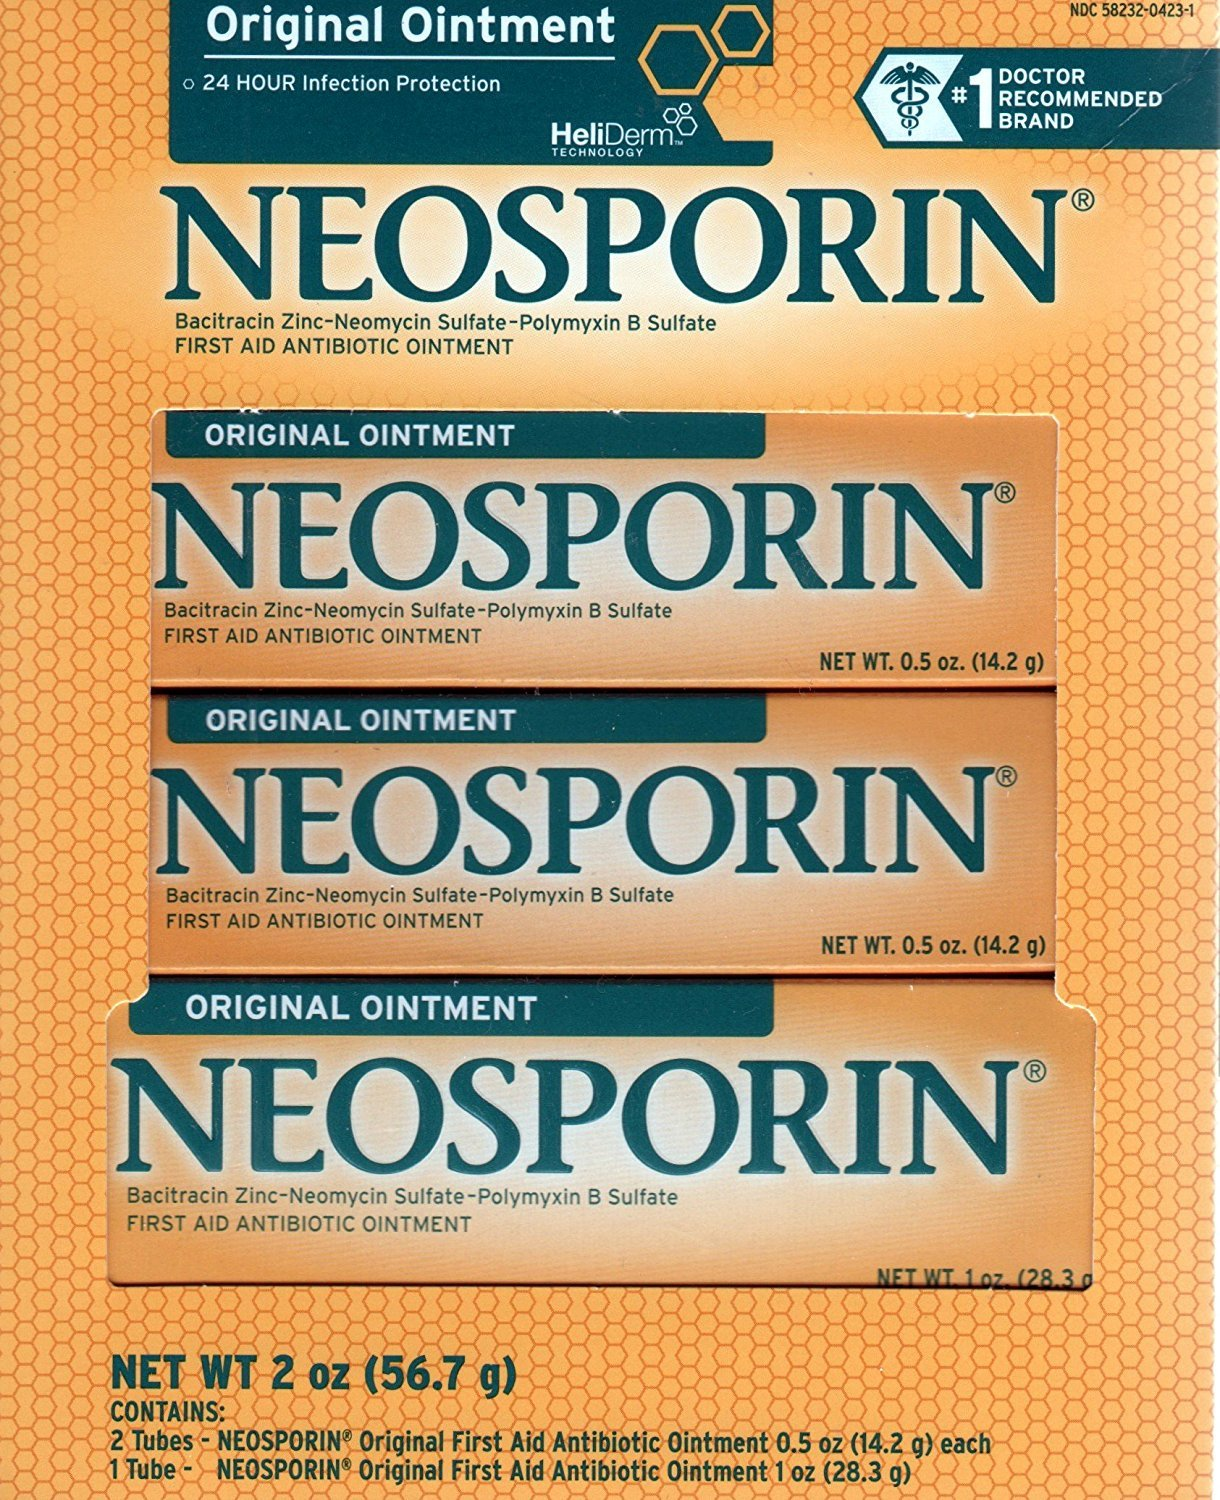 Neosporin Original First Aid Antibiotic Ointment Combo Pack, 2oz